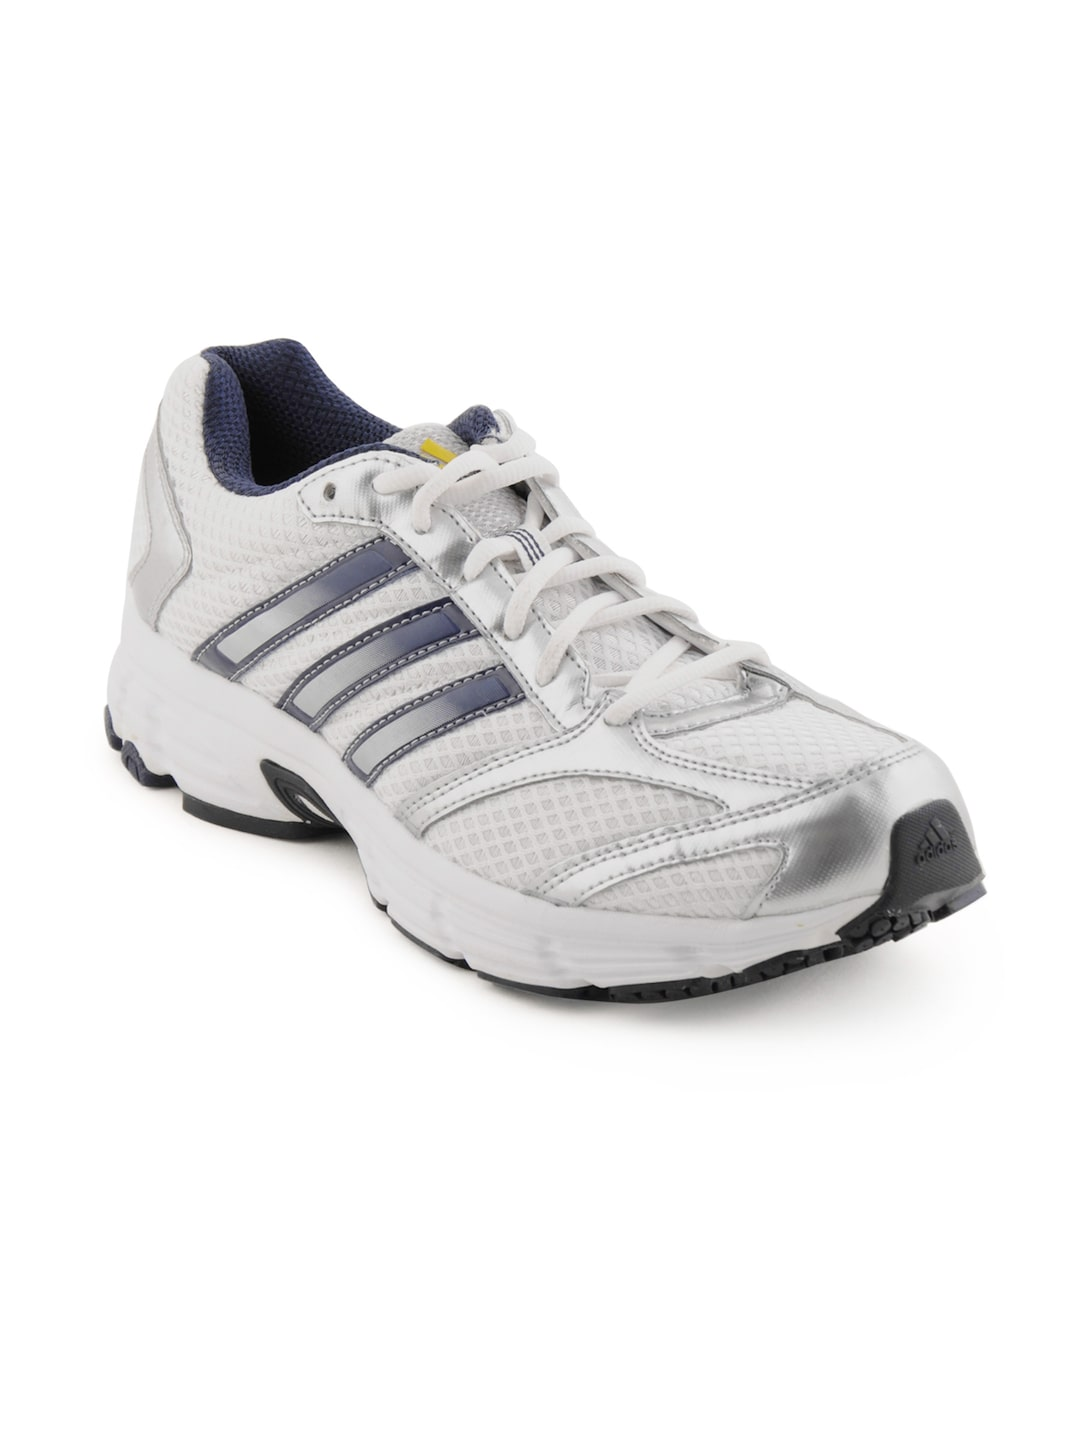 Adidas af3074 Vanquish White Sport Shoes Best Price in